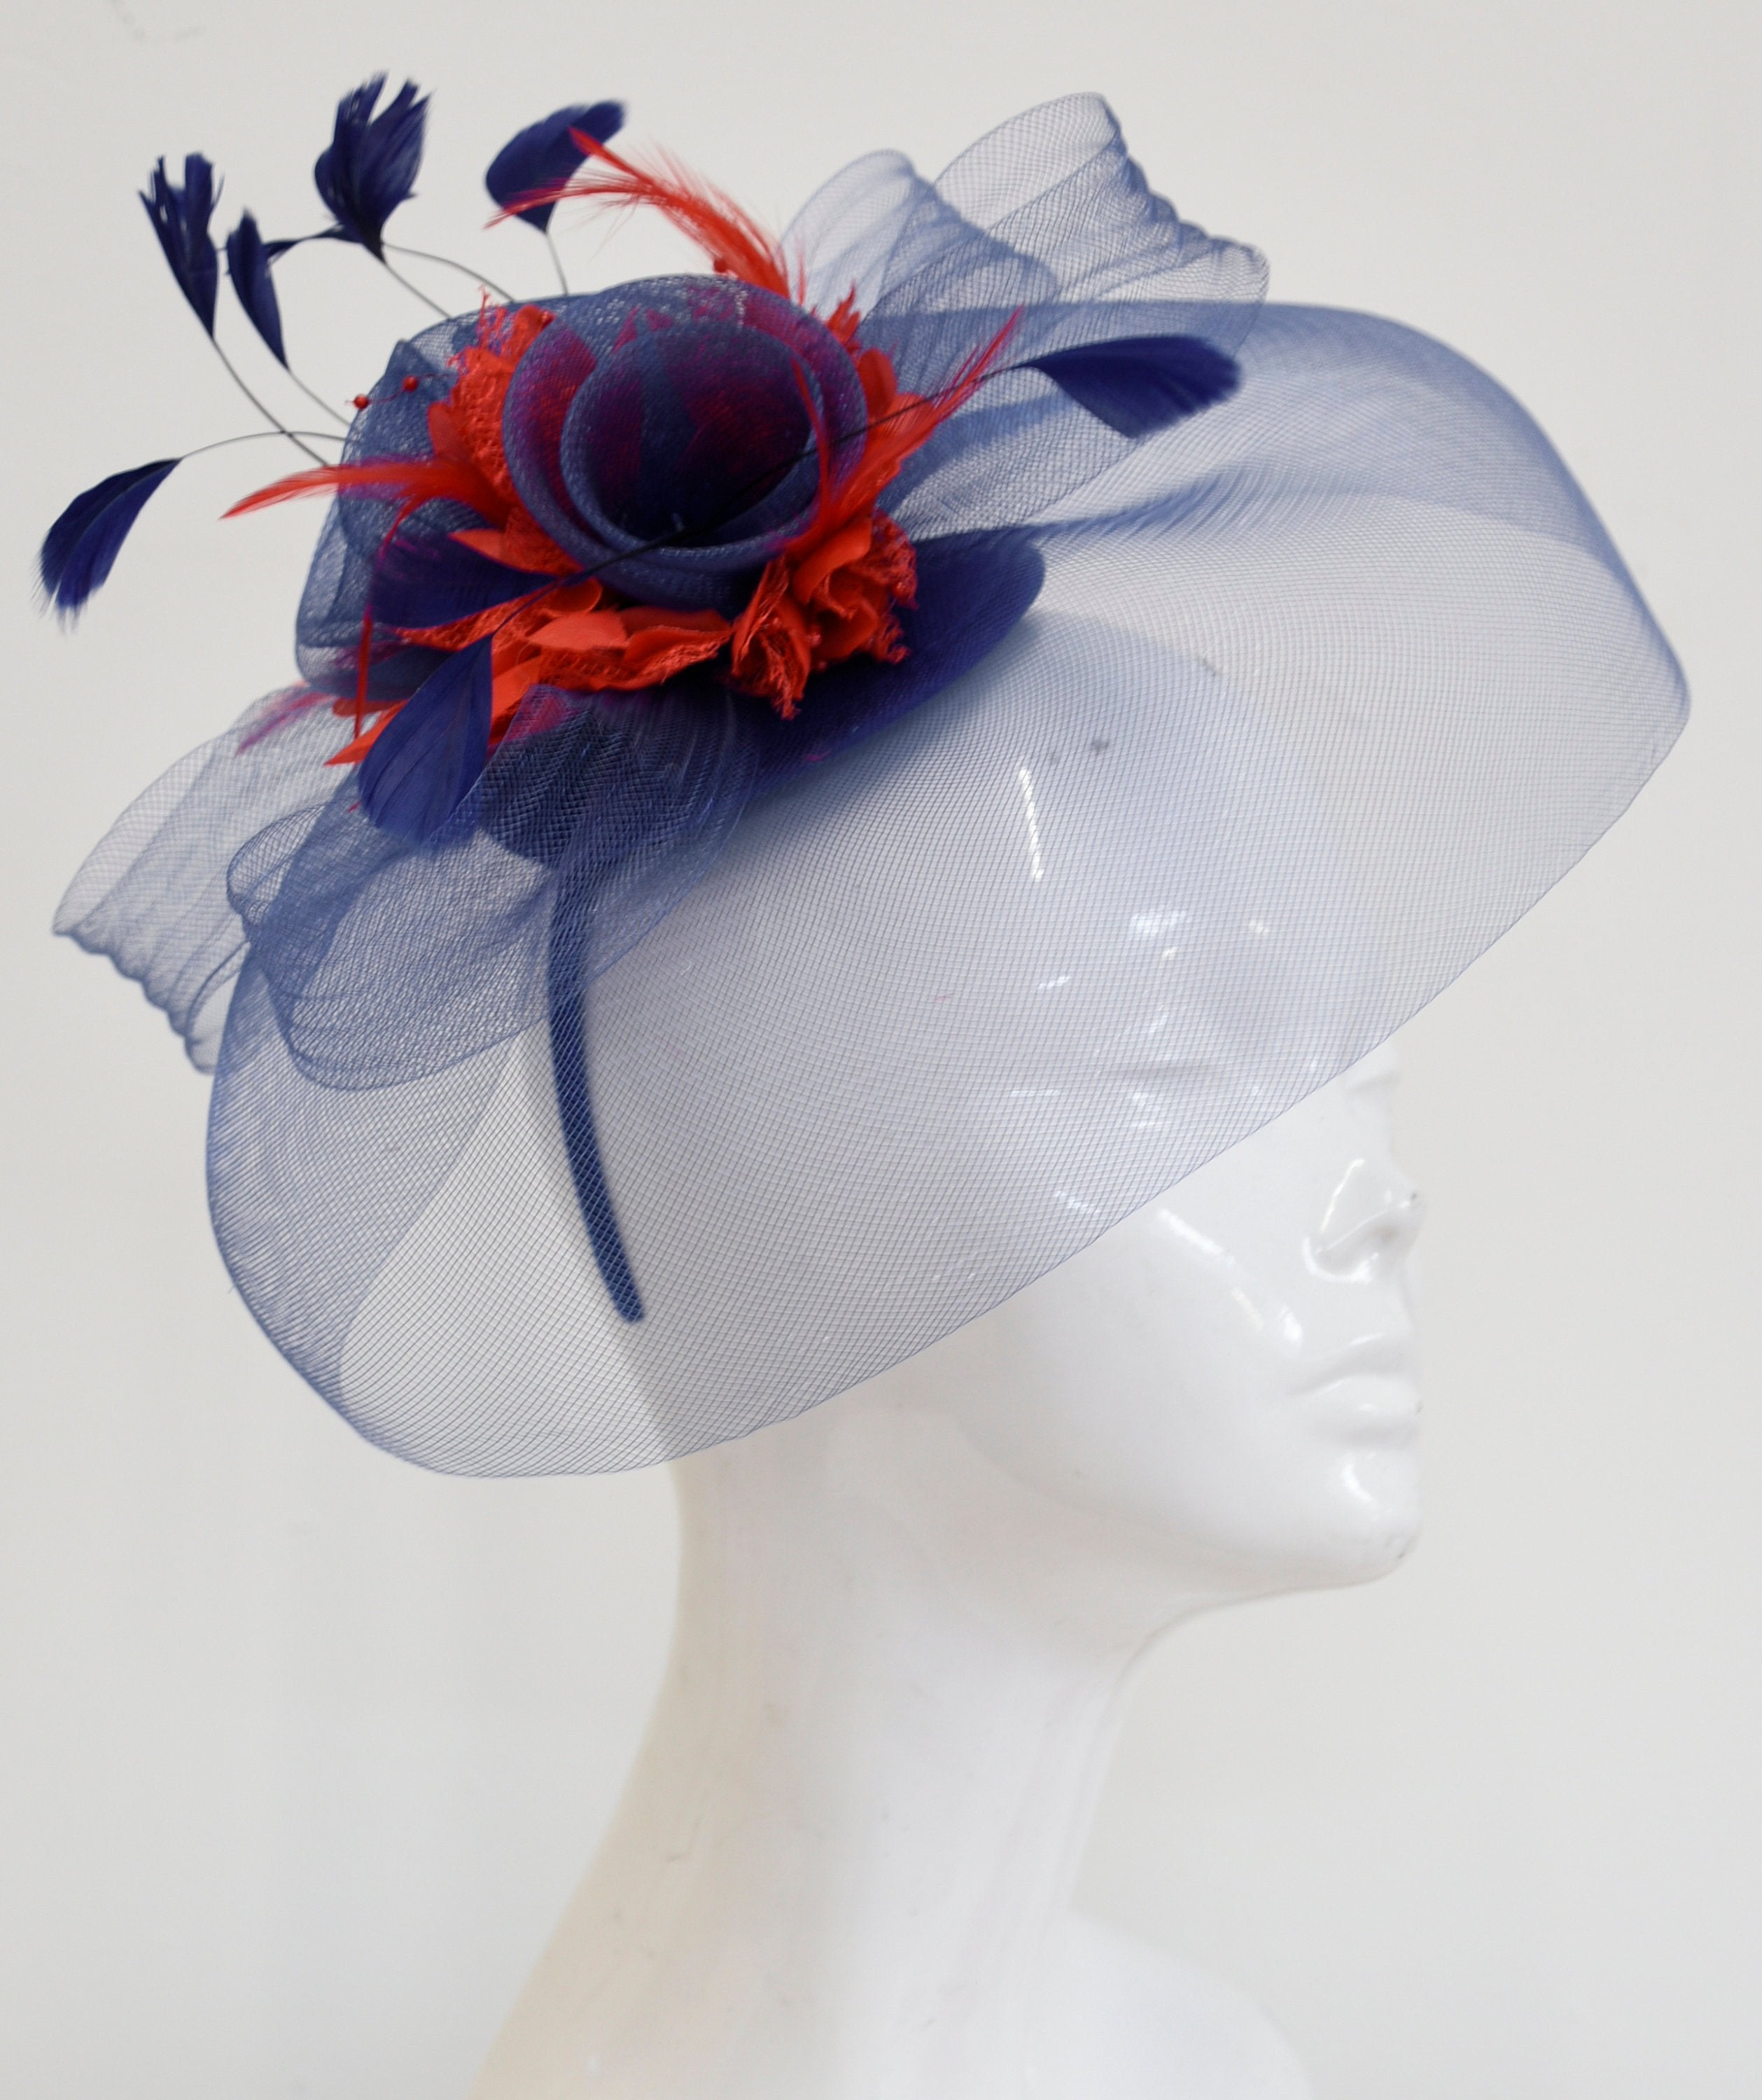 Caprilite Big Navy and Red Fascinator Hat Veil Net Hair Clip Ascot Derby Races Wedding Headband Feather Flower